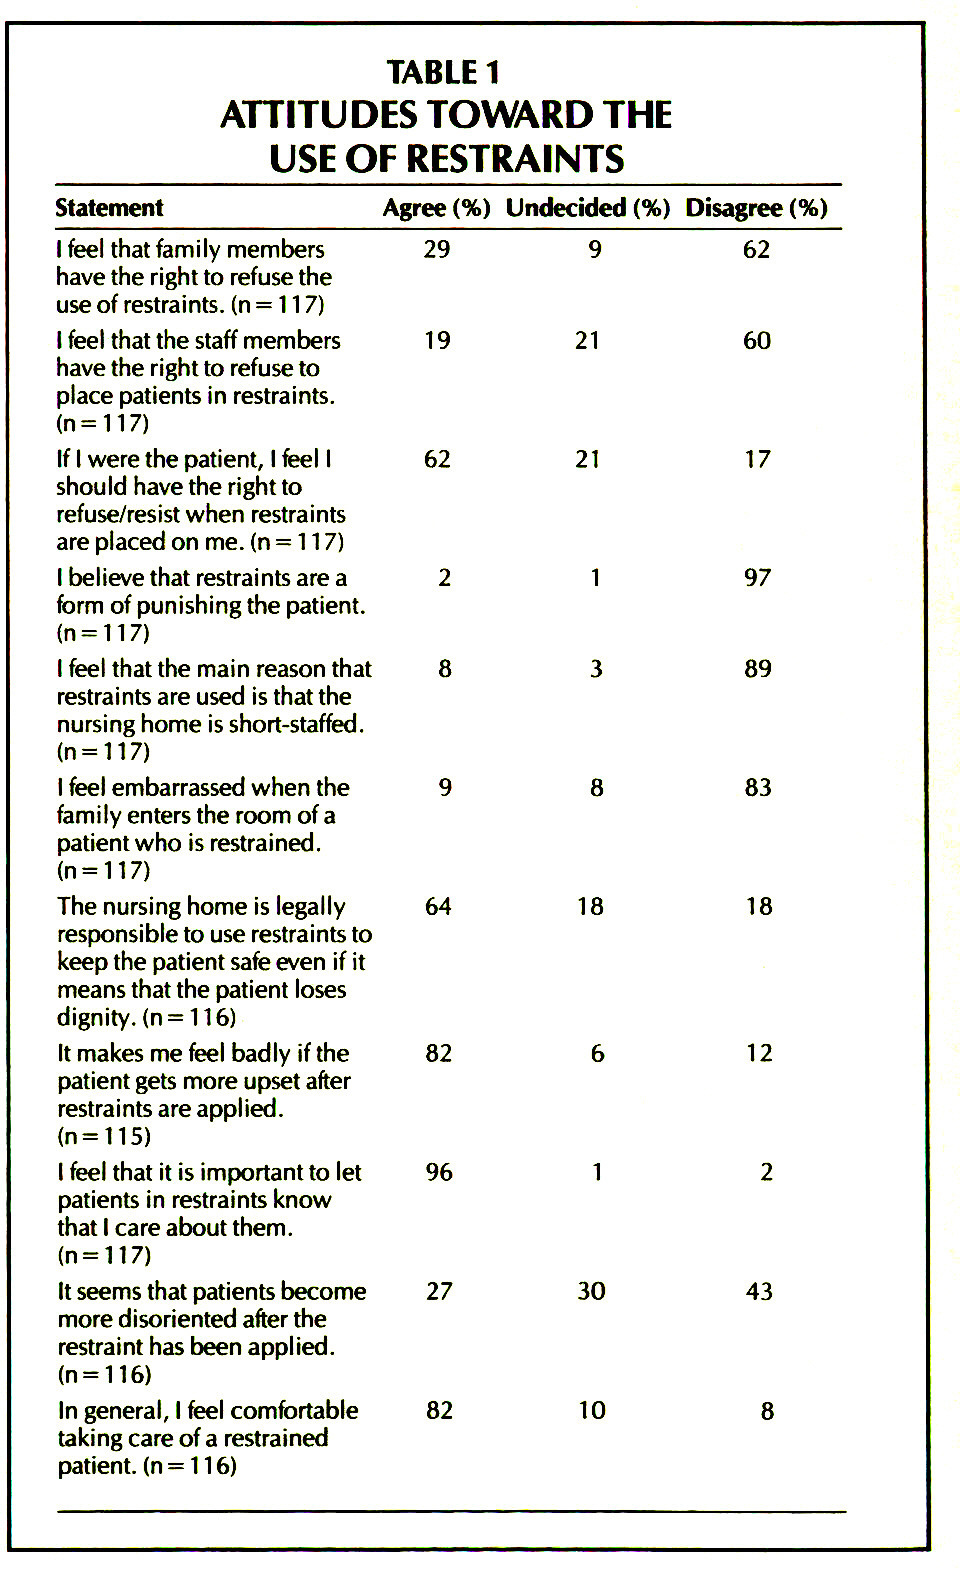 TABLE 1ATTITUDES TOWARD THE USE OF RESTRAINTS